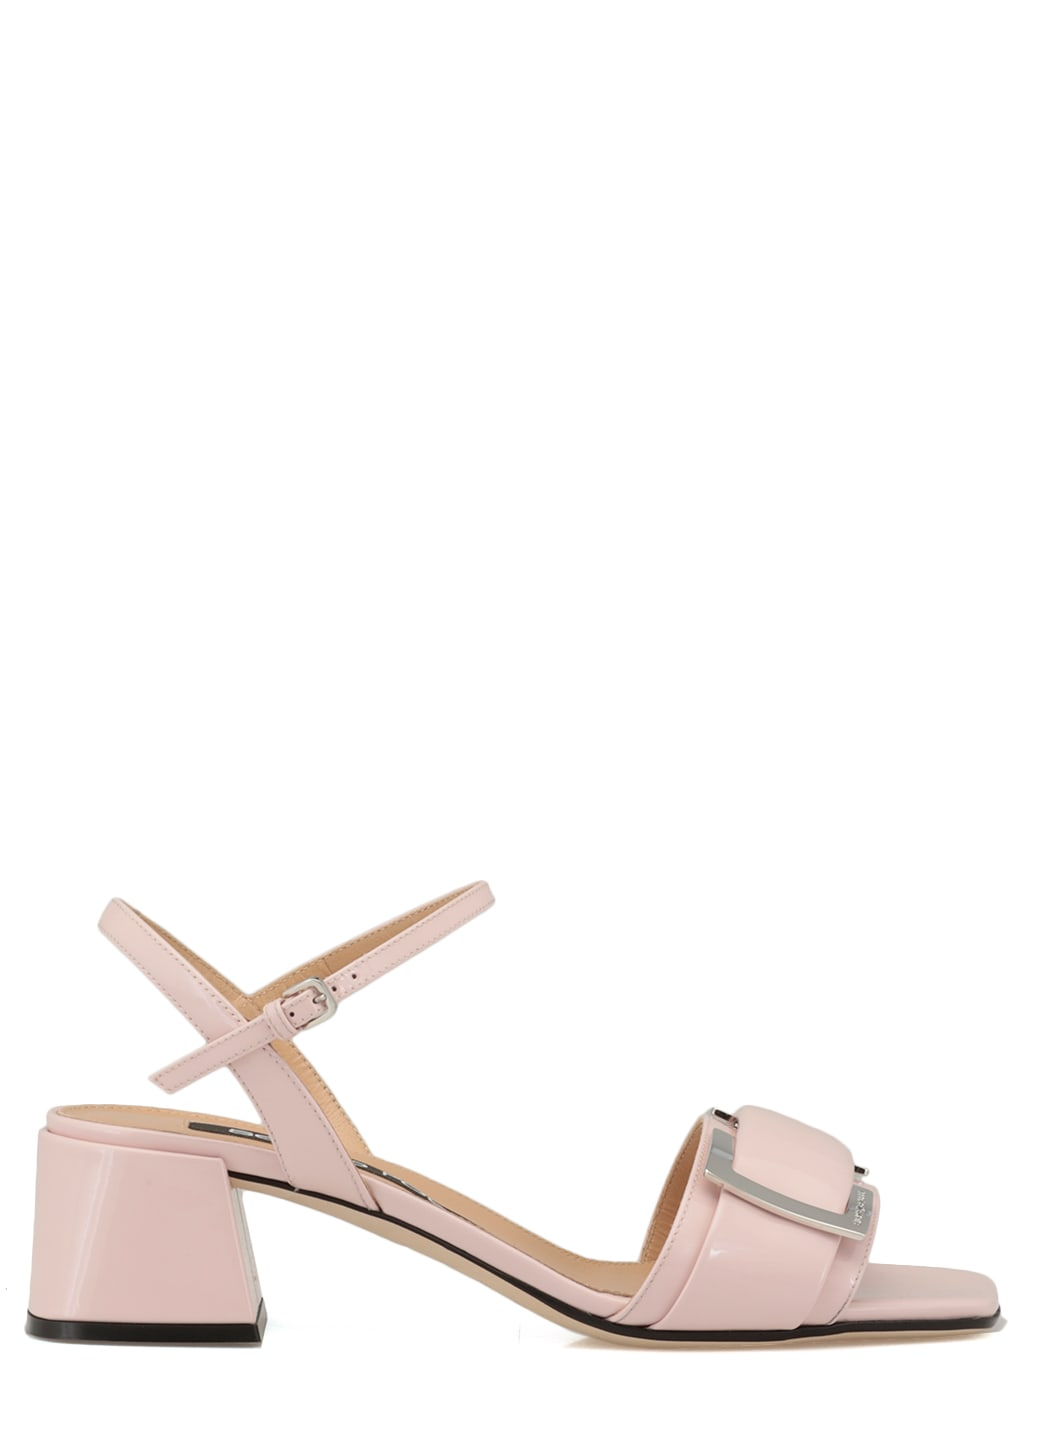 Buy Sergio Rossi Leather Sr Prince Sandal online, shop Sergio Rossi shoes with free shipping